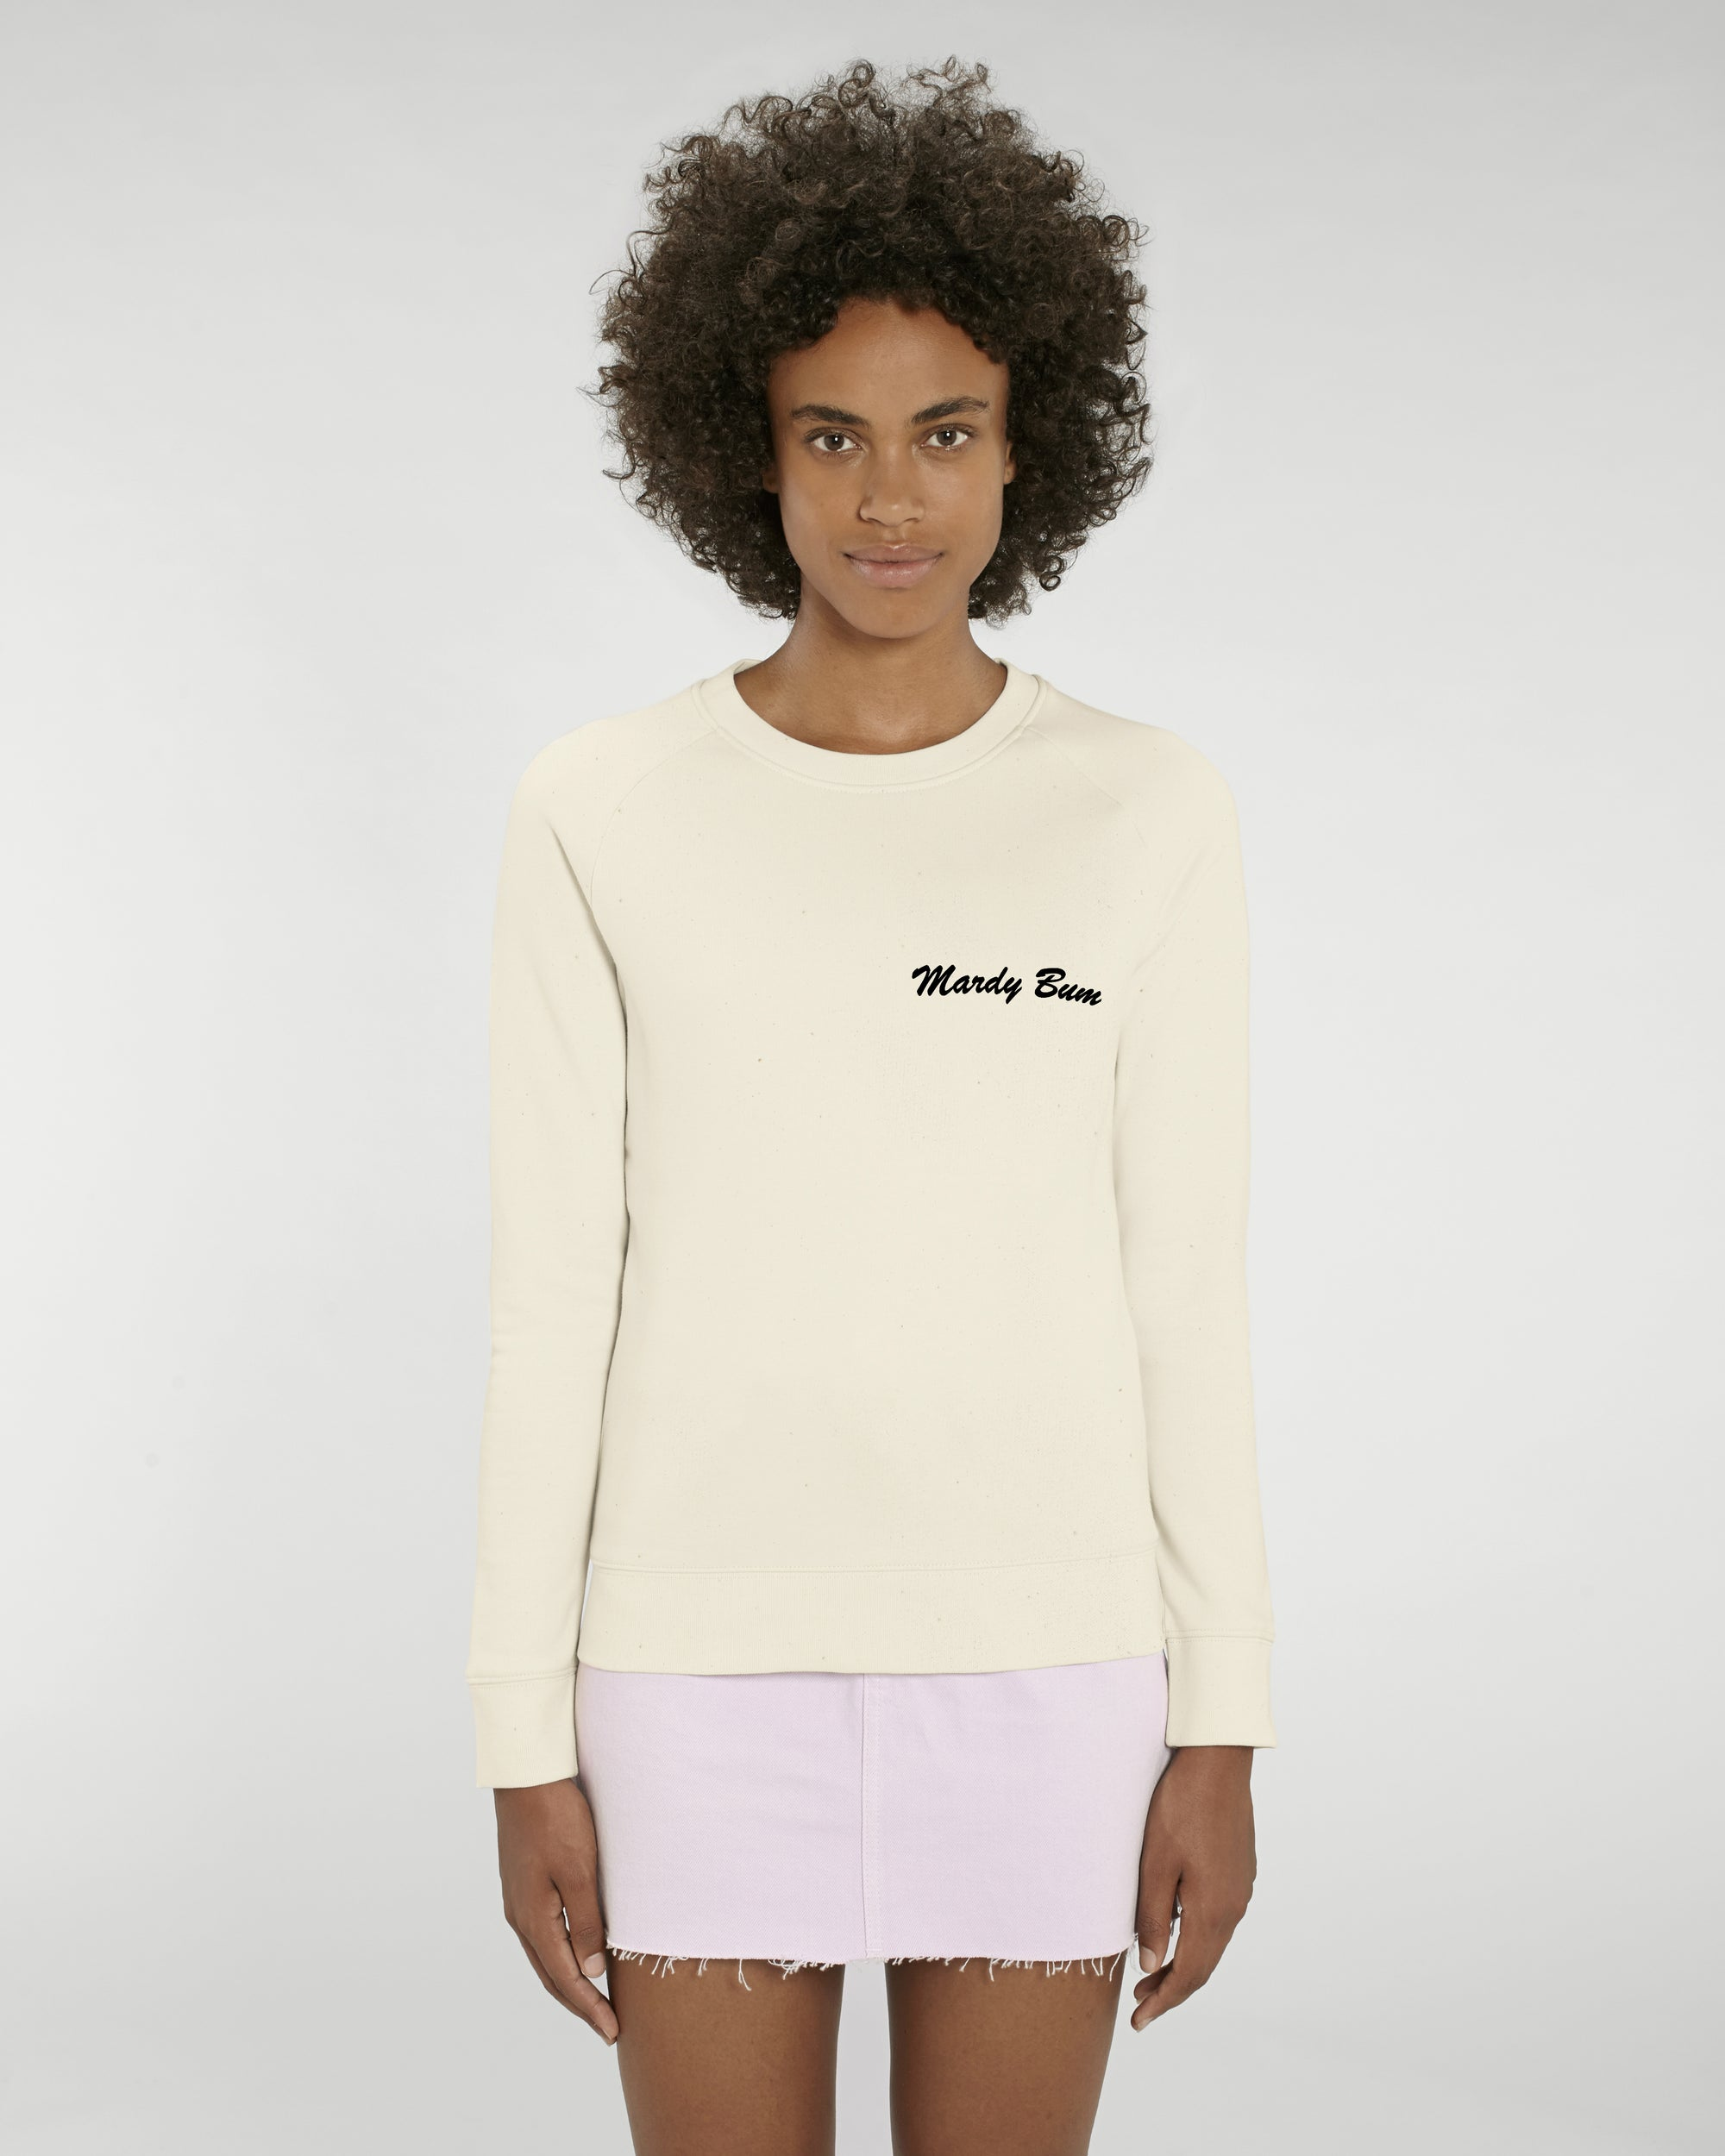 'MARDY BUM' LEFT CHEST EMBROIDERED WOMEN'S ORGANIC COTTON SWEATSHIRT